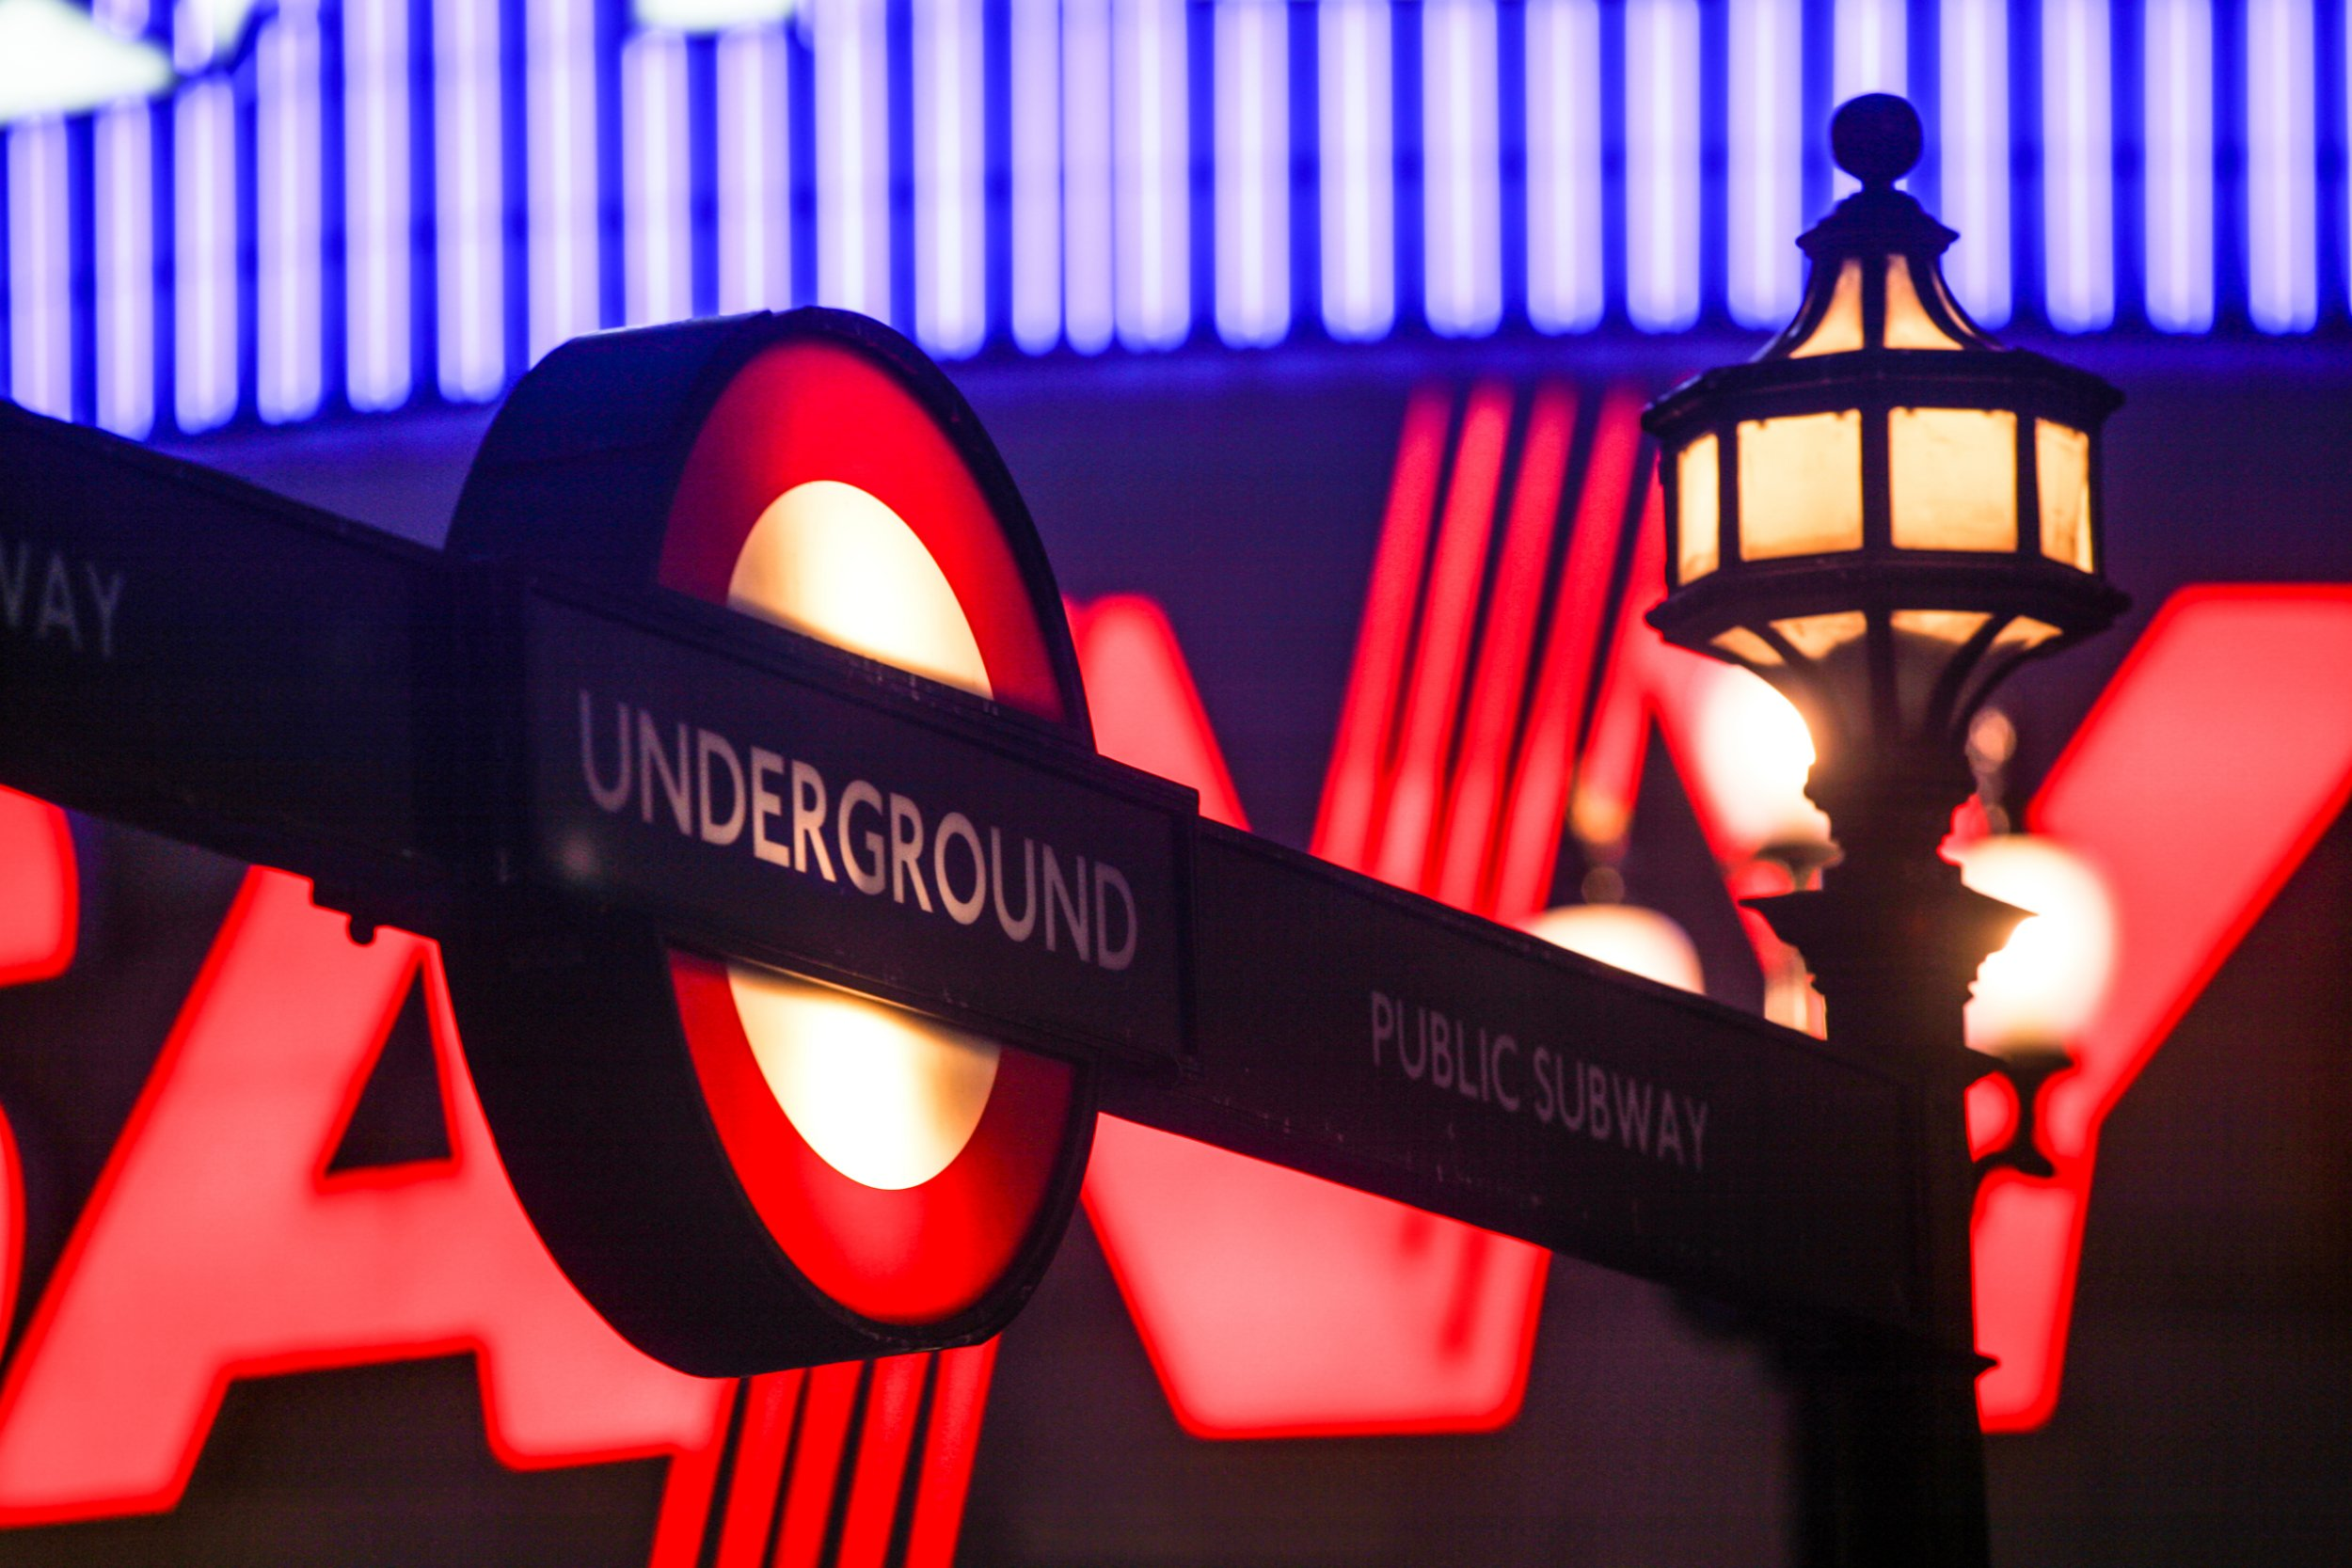 Why I, as a woman who values her safety, won't be using the Night Tube